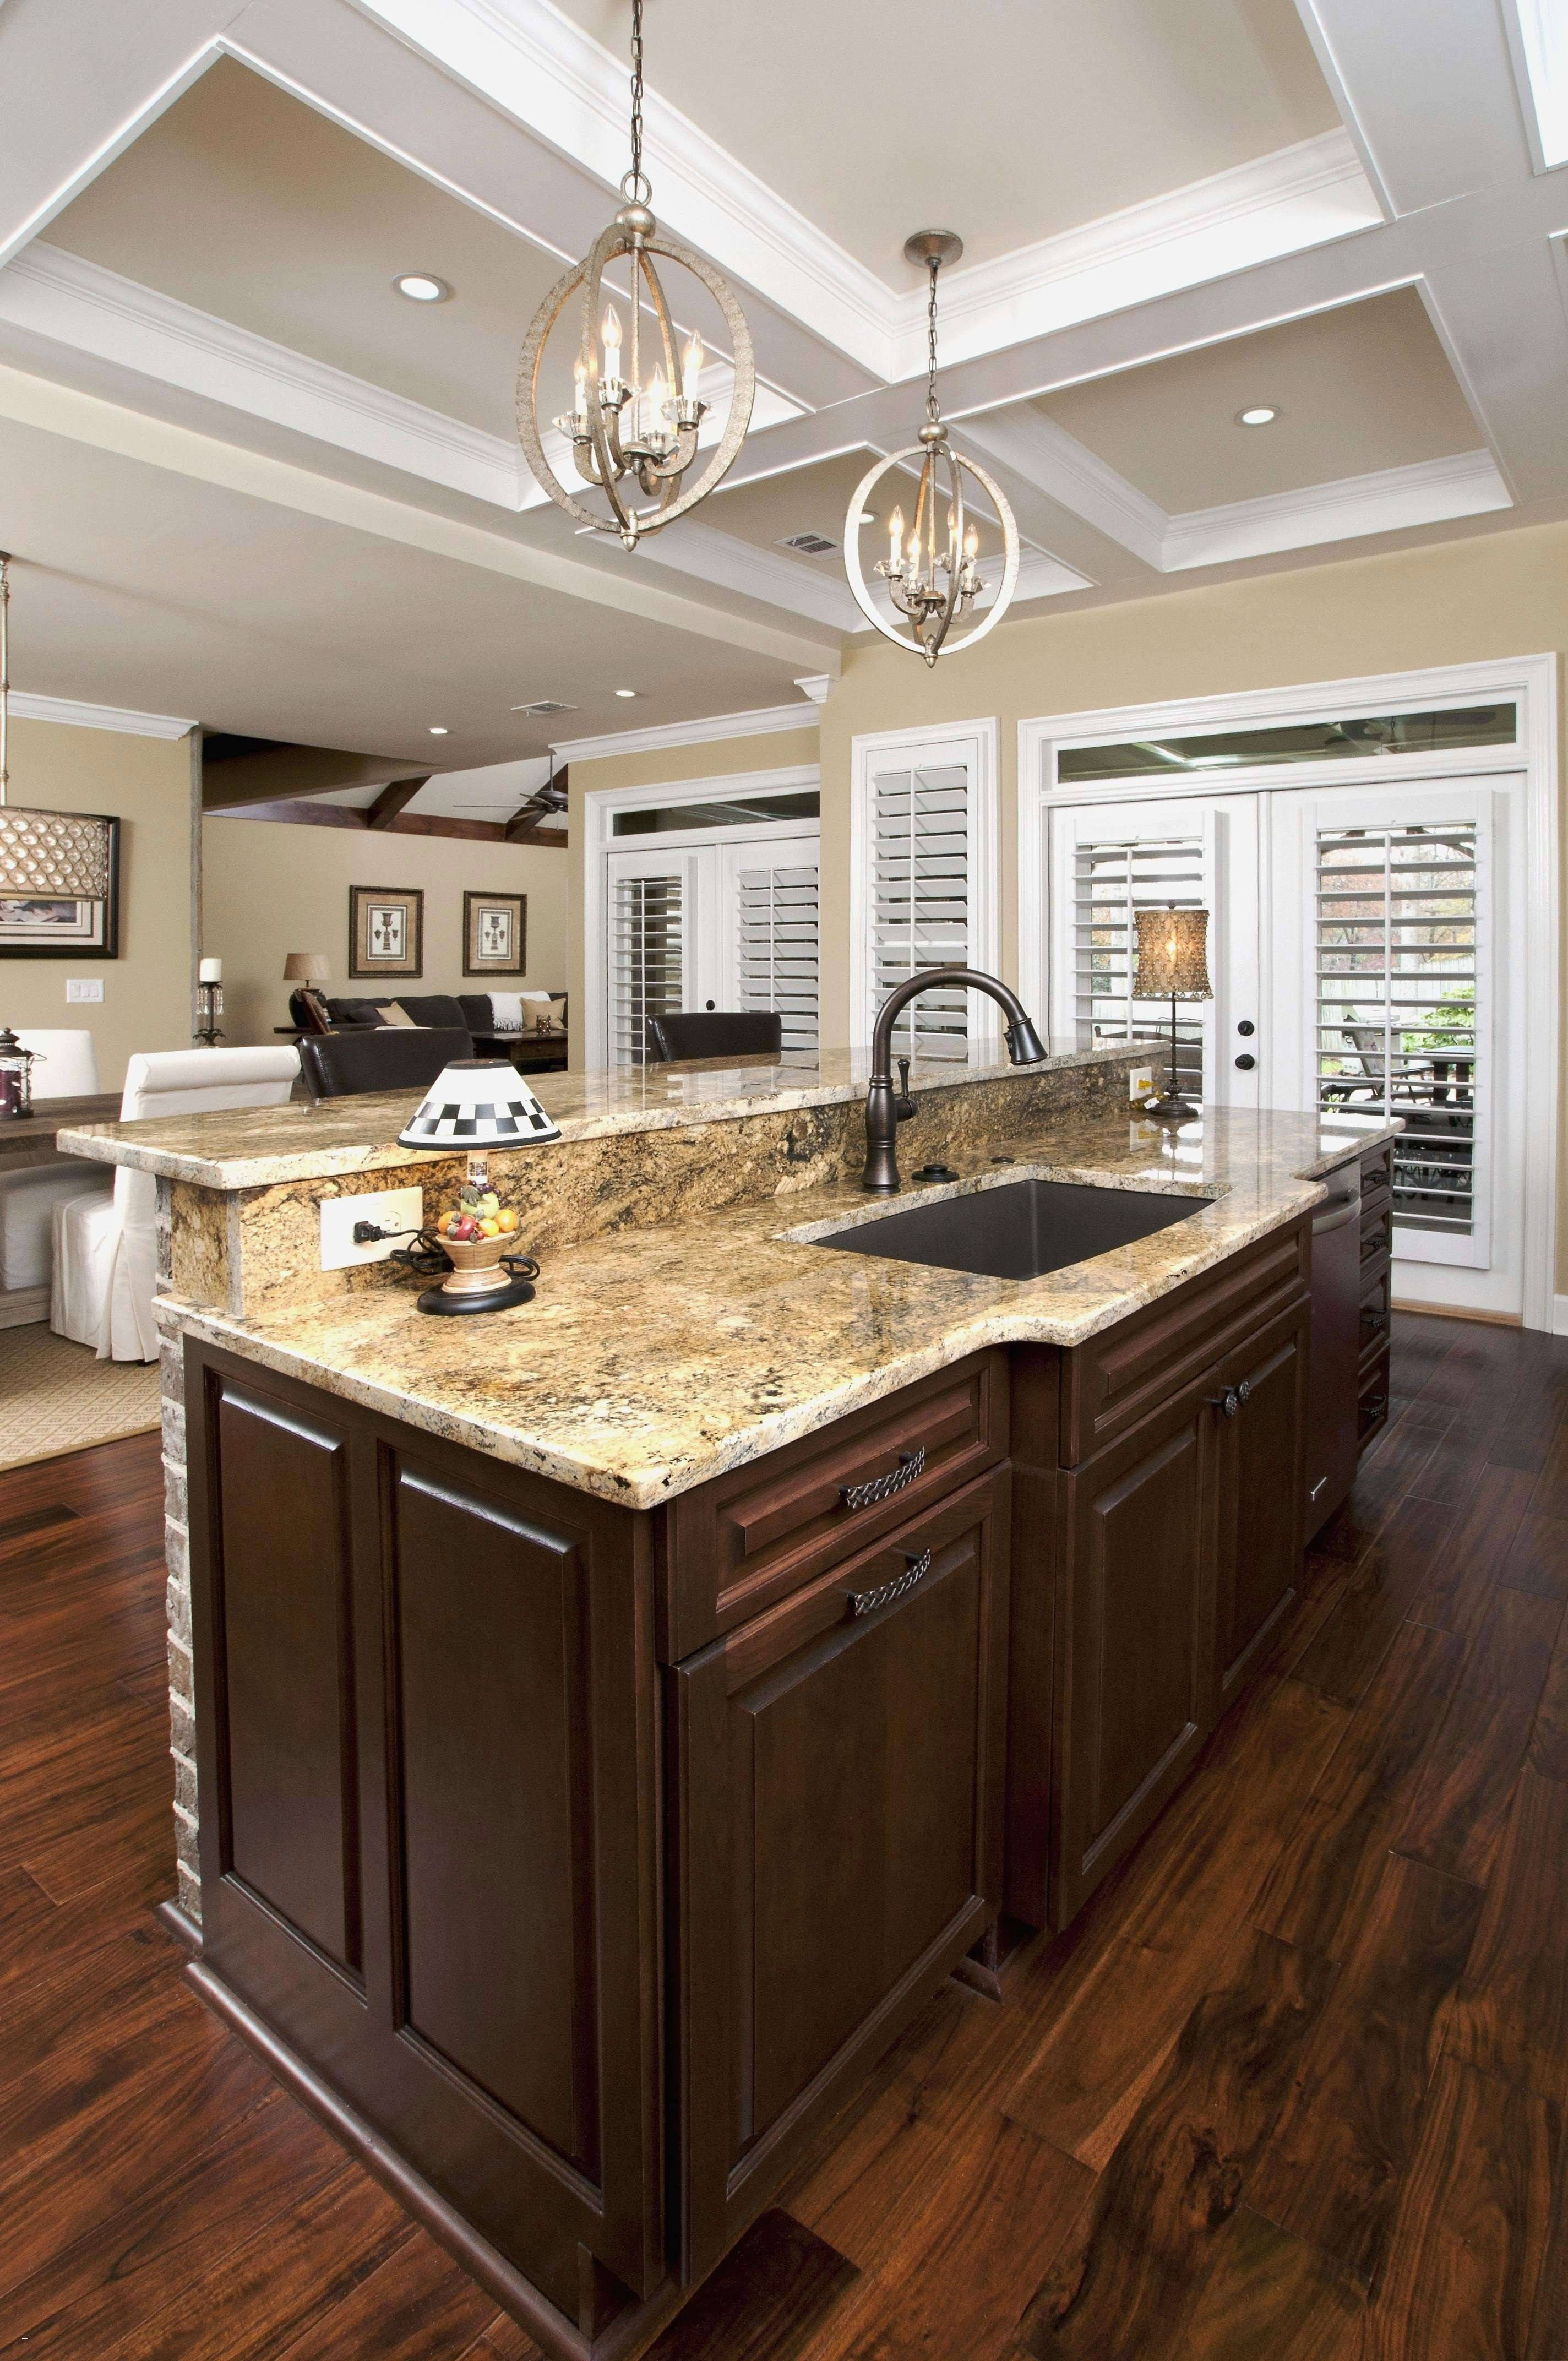 small galley kitchen ideas the best awesome exquisite kitchens ideas kitchen design 0d design kitchen collection